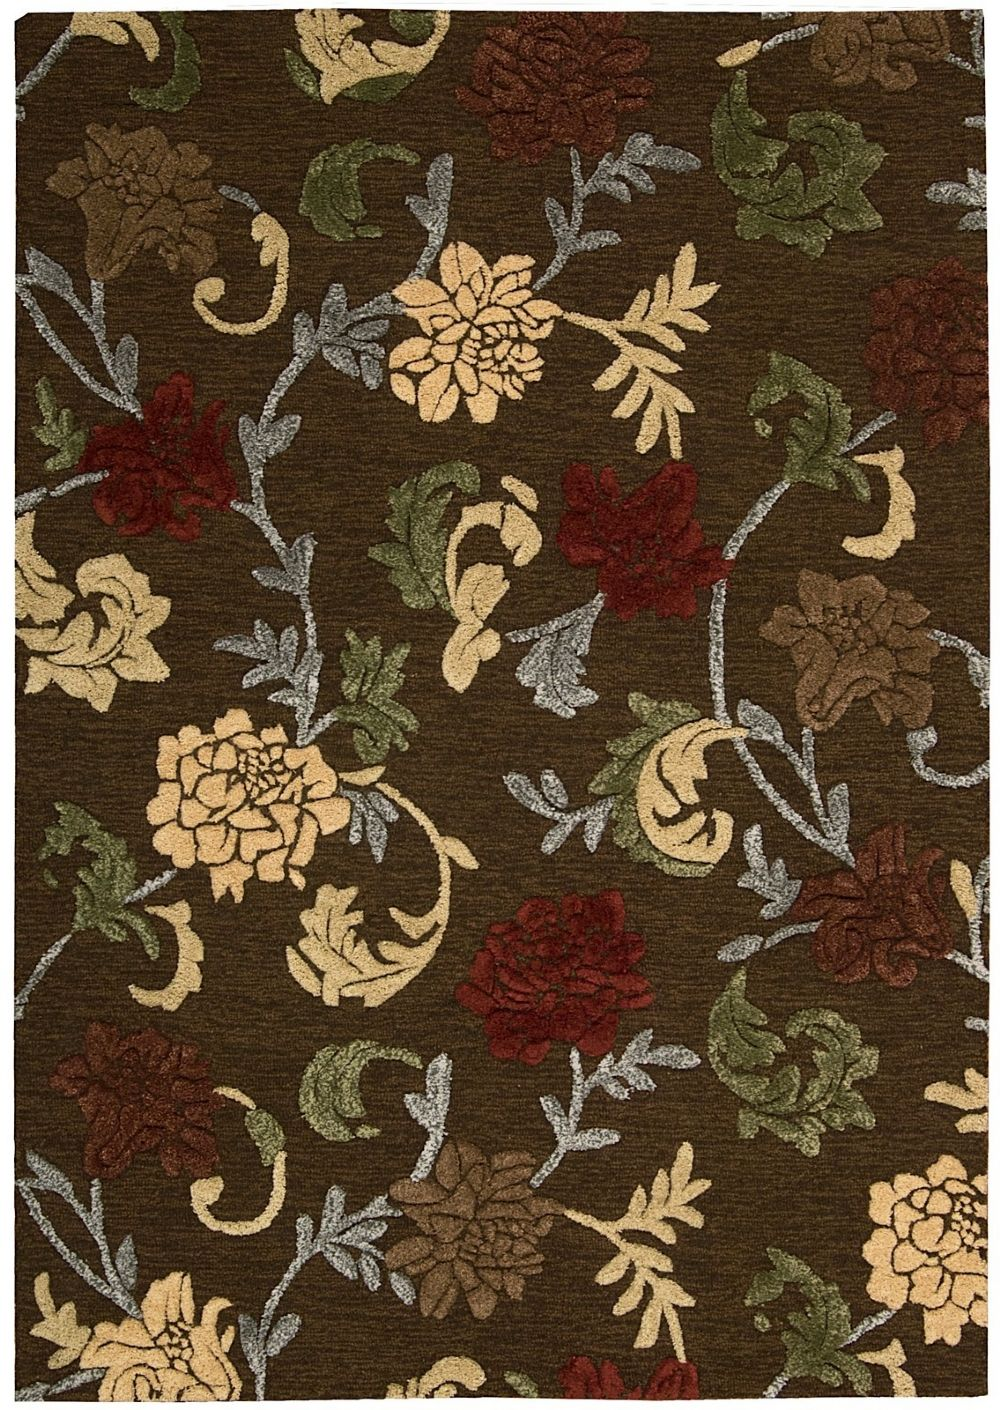 nourison sunburst country & floral area rug collection